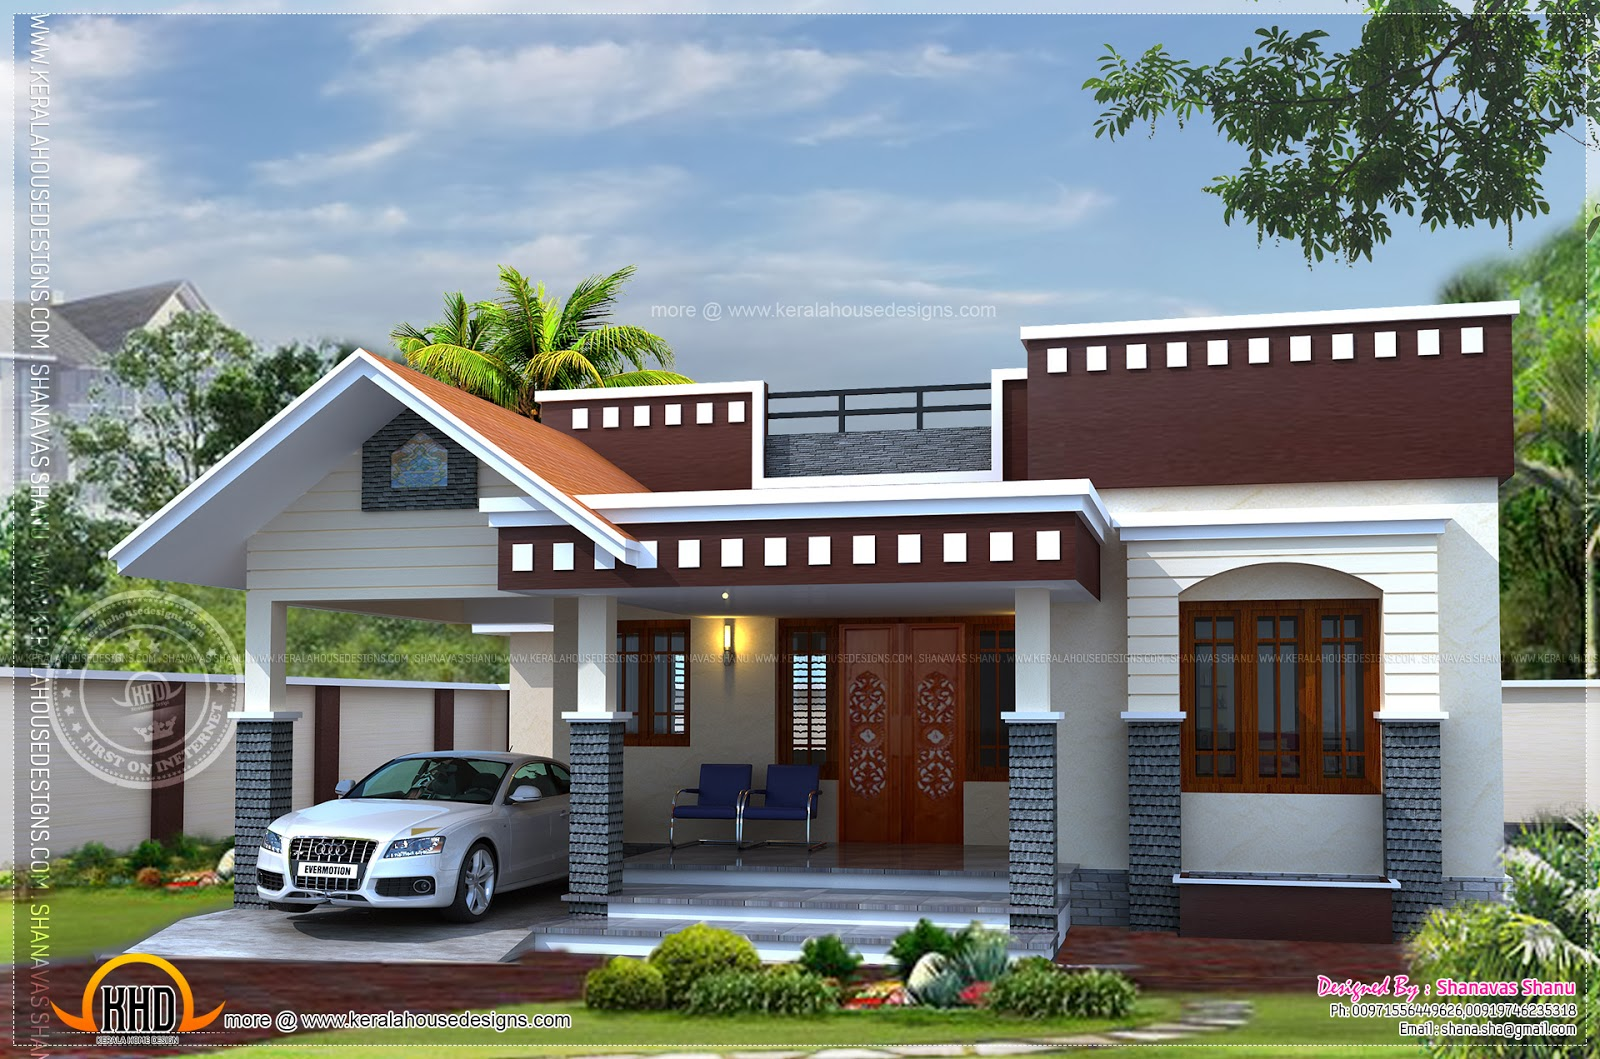 Home plan of small house kerala home design and floor plans for New house plans with pictures